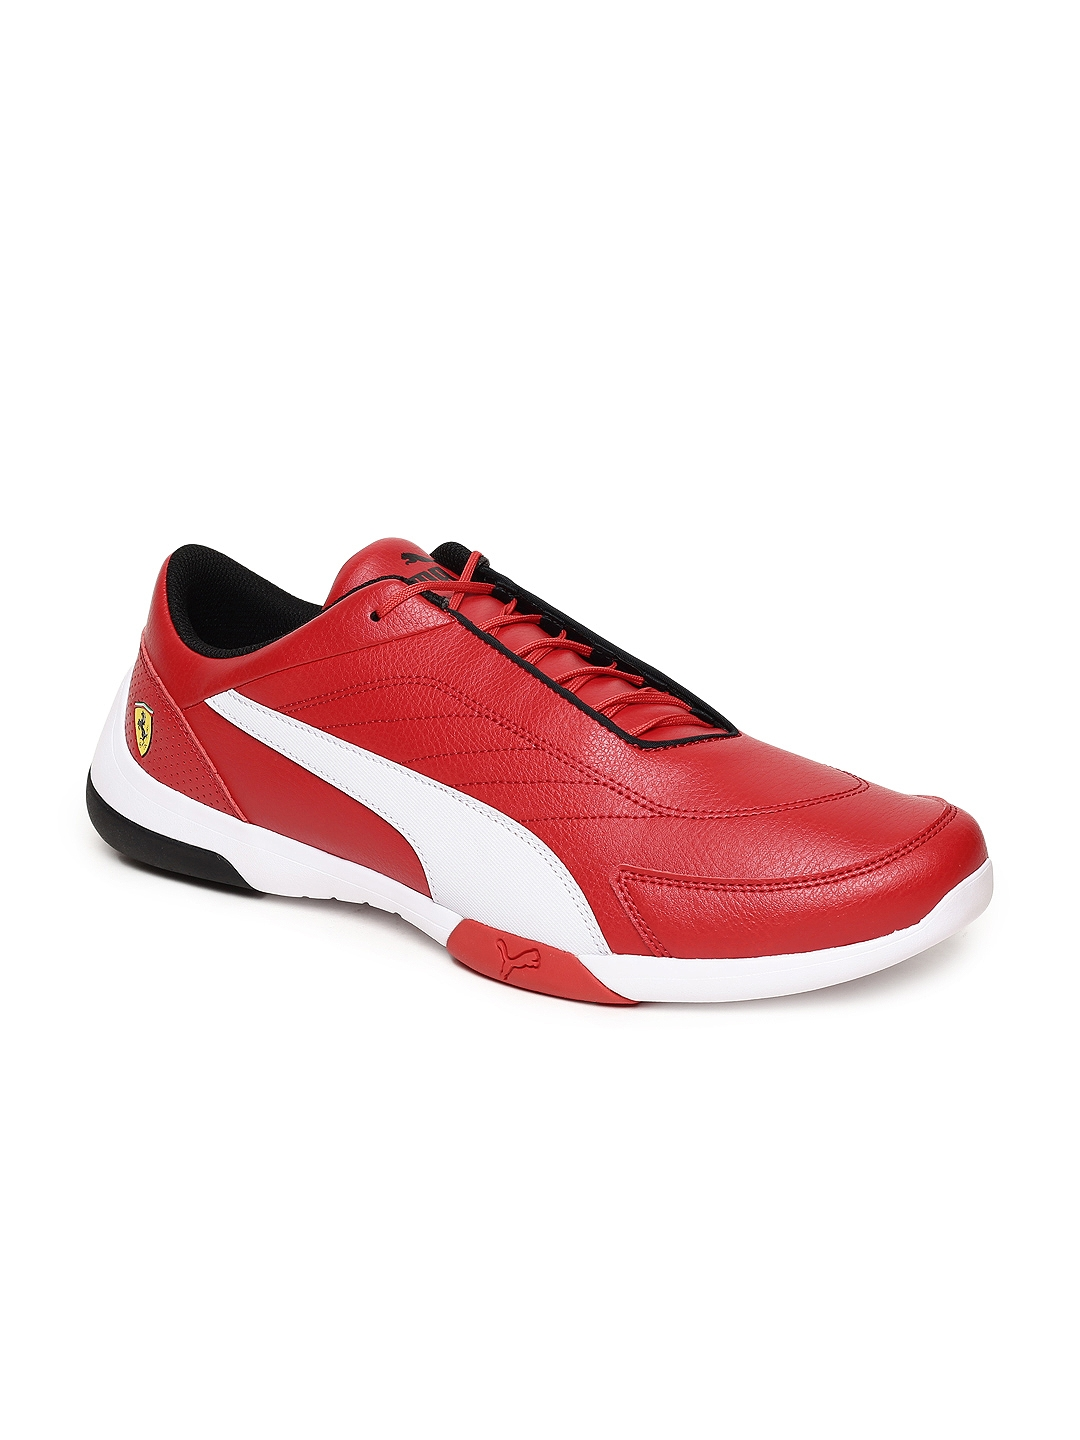 Buy Puma Unisex Red SF Kart Cat III Rosso Corsa Sneakers - Casual ... 8f6f185c0